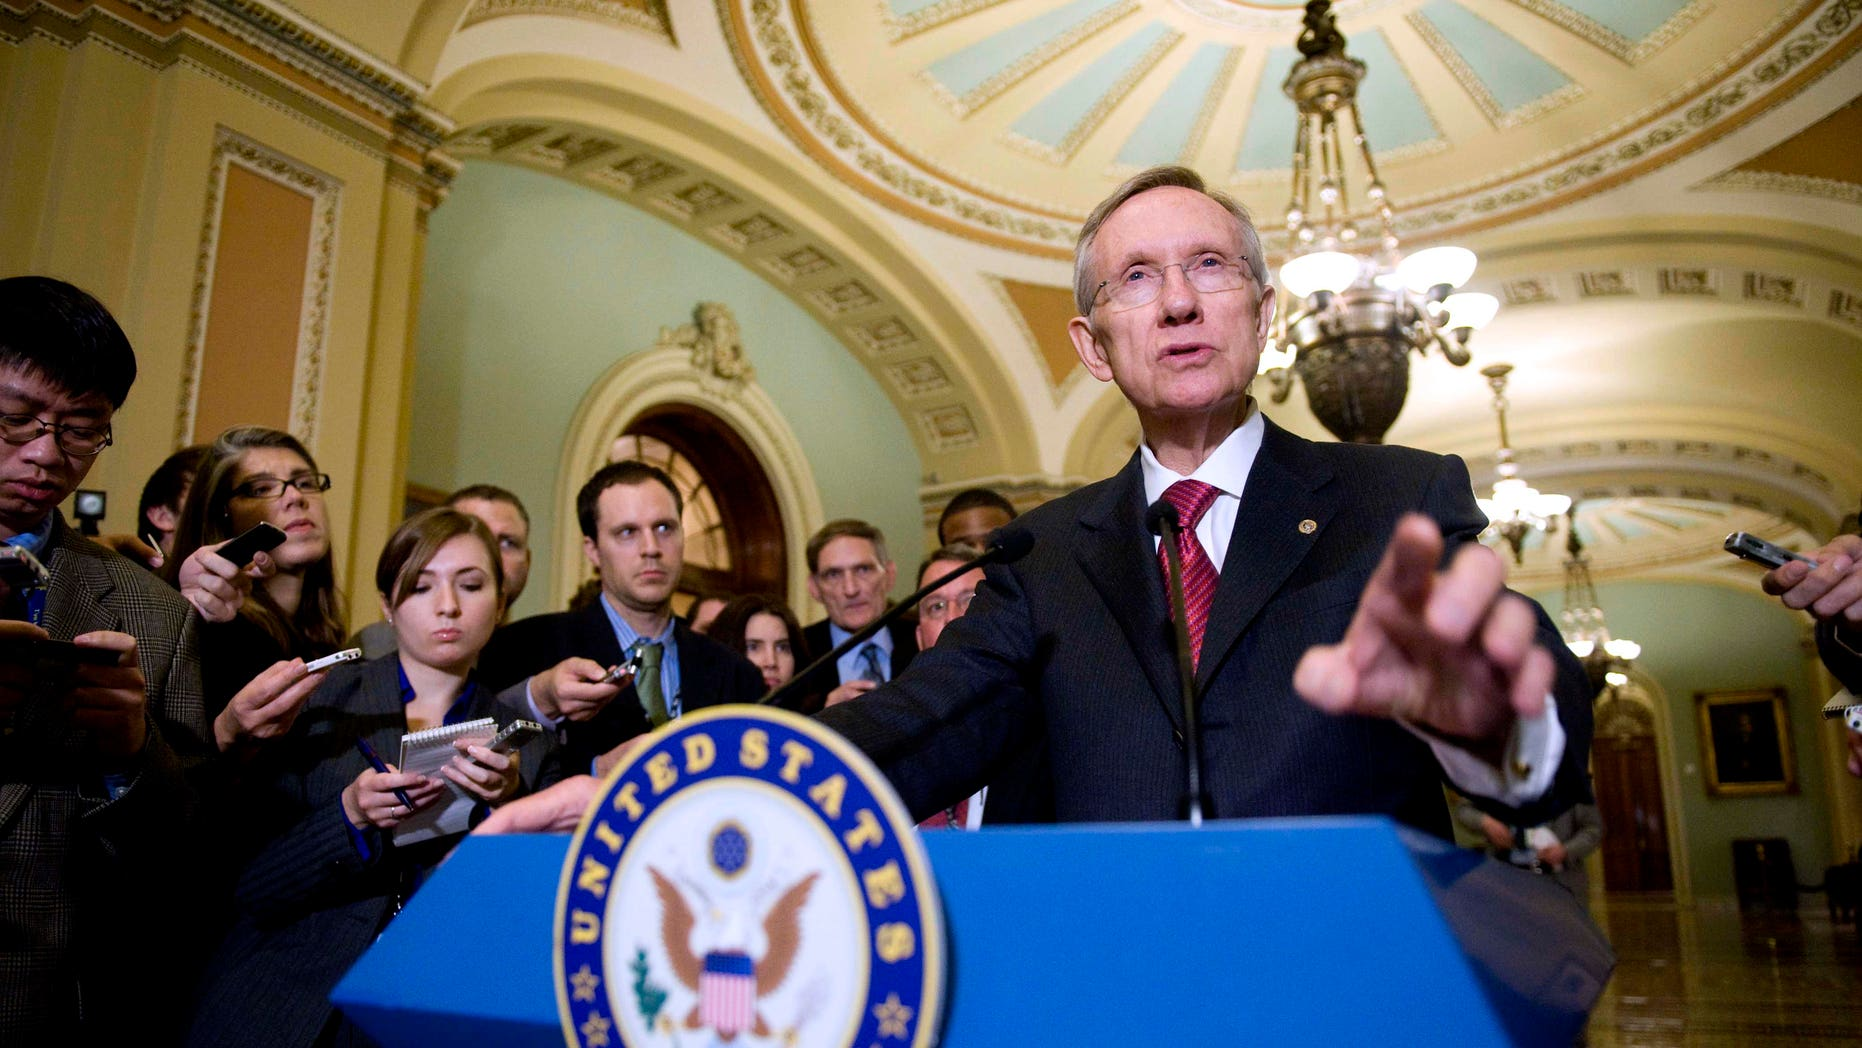 Bush tax-cuts are the priority for the lame-duck Congress, which returned Nov. 29. Senate Majority Leader Harry Reid, shown here Nov. 18 on Capitol Hill, has suggested that the Senate hold two votes: one on the Democratic plan confining the tax cut extension to the middle class, the other on Republican leader Mitch McConnell's plan to extend the cuts to everyone.